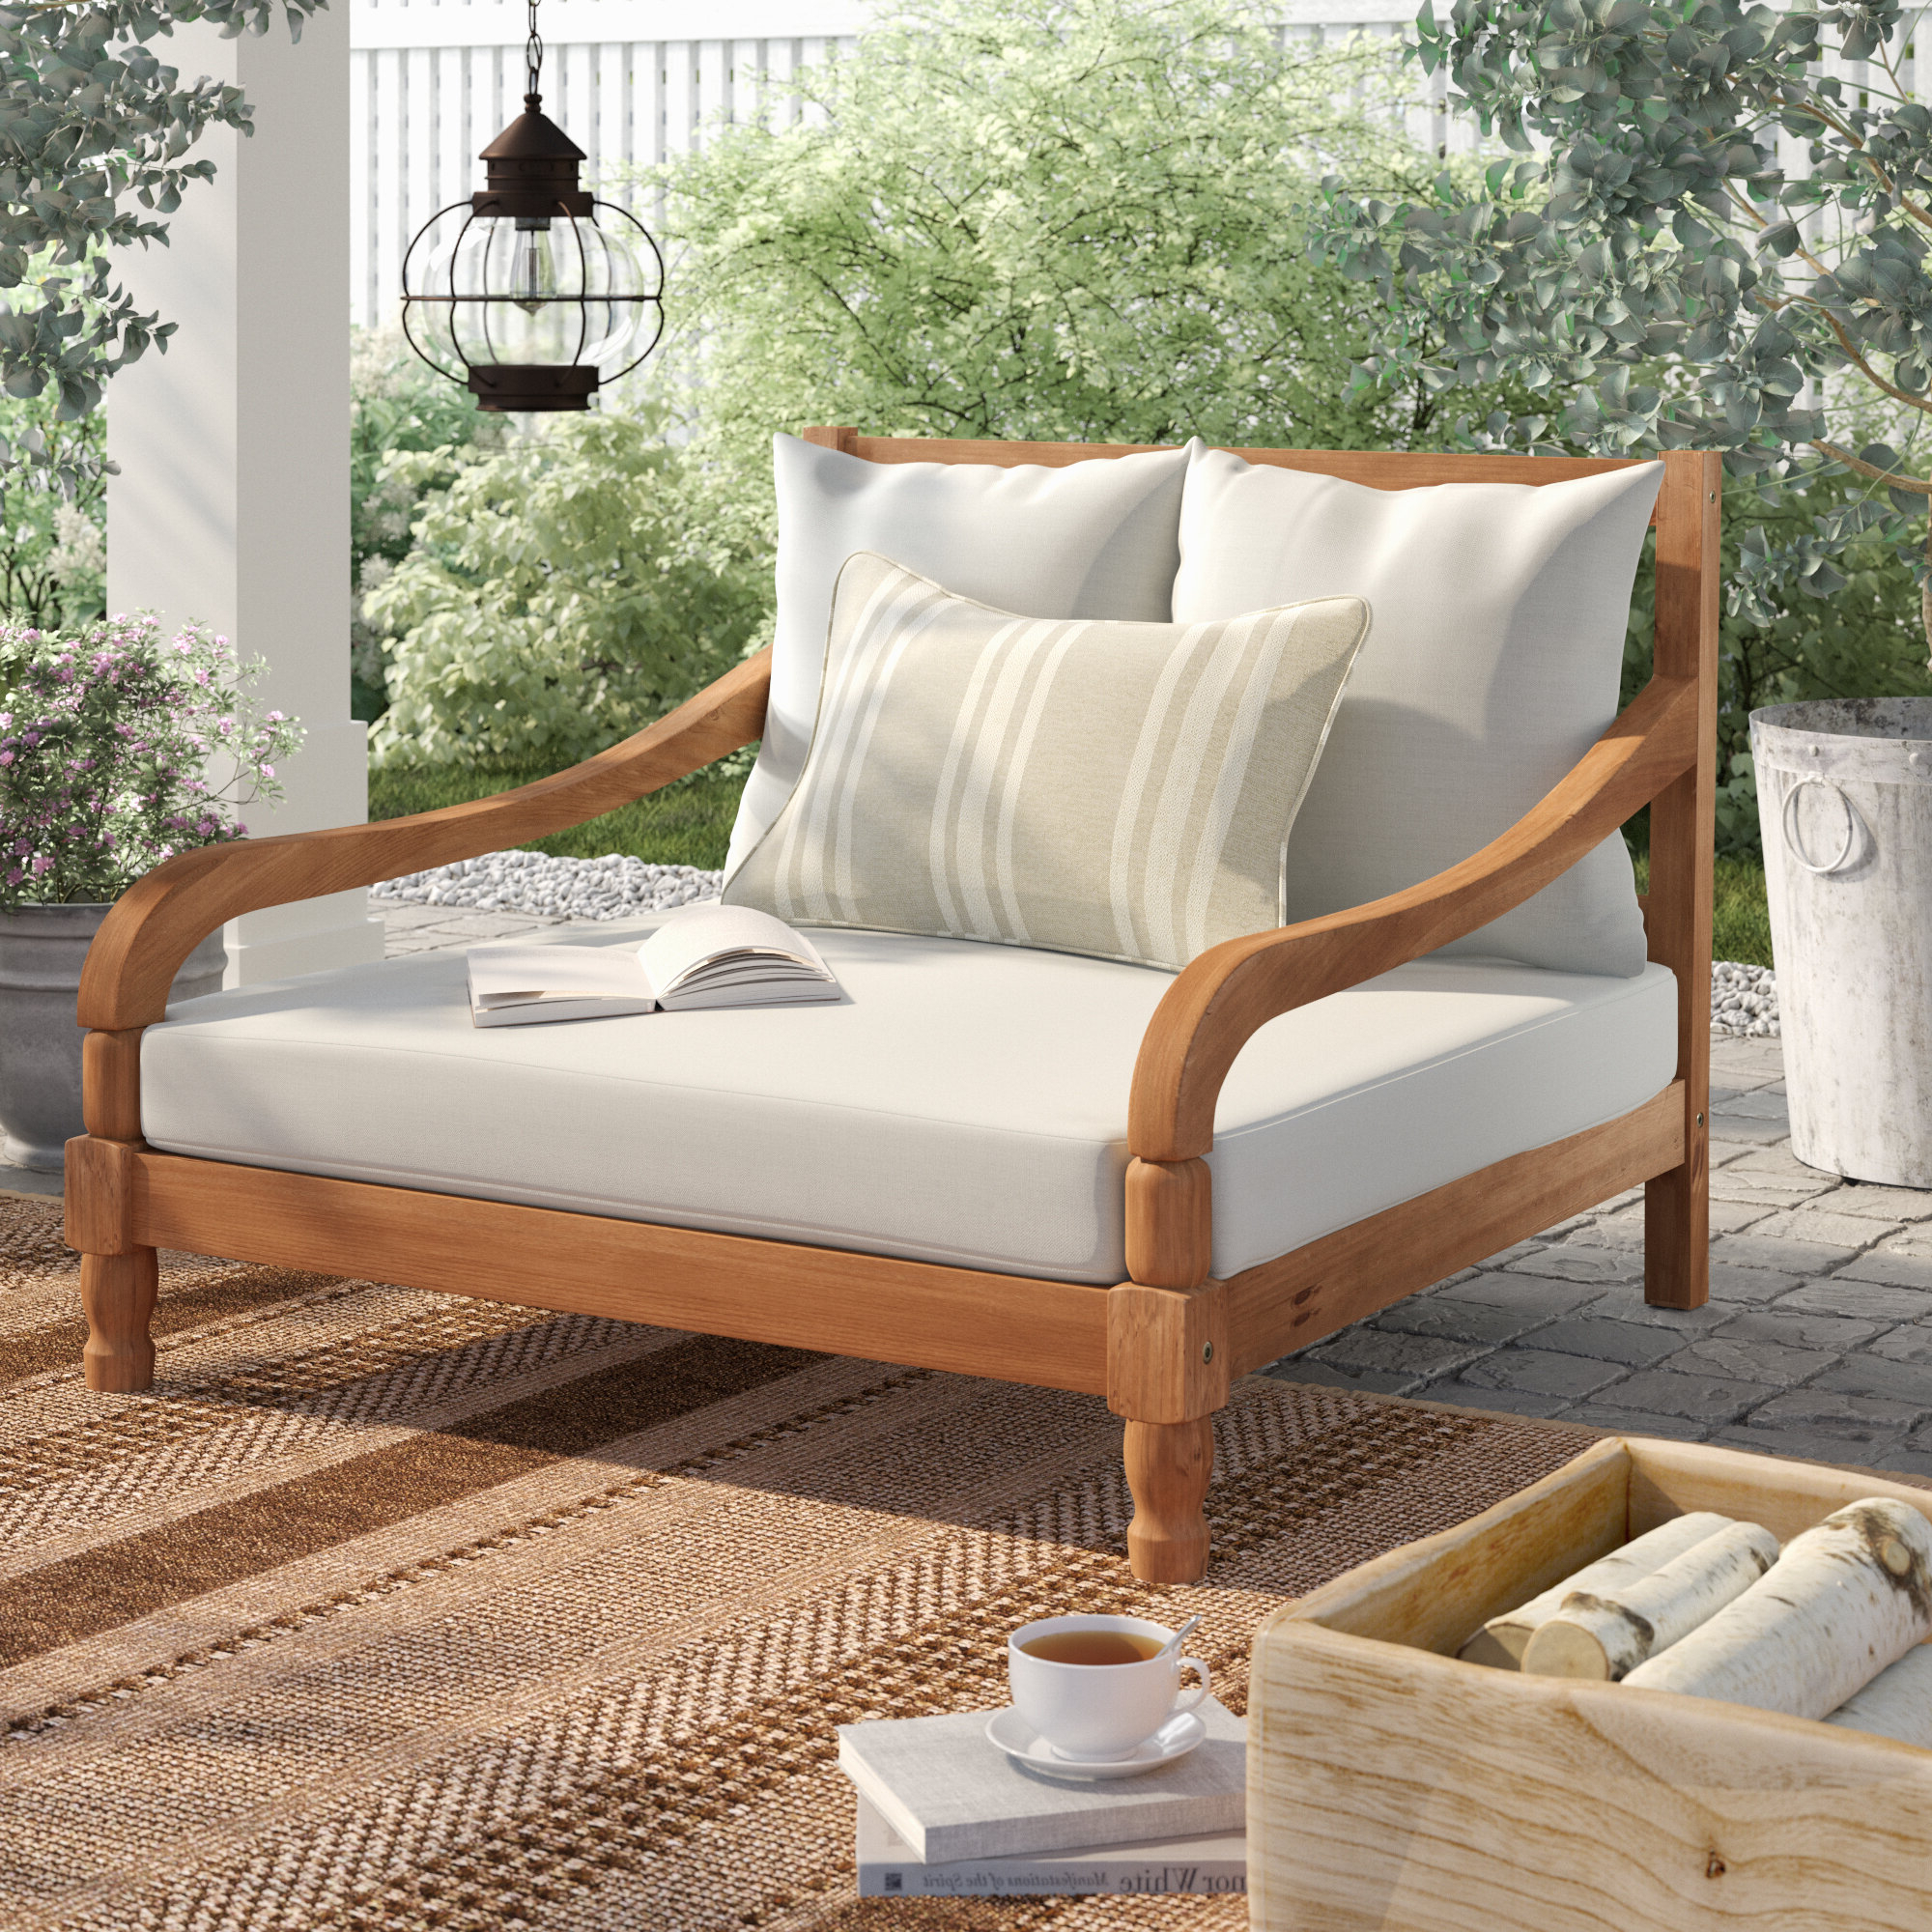 Famous Wiest Double Chaise Lounge With Cushion Throughout Wood Blue And White Cushion Outdoor Chaise Lounge Chairs (View 15 of 25)